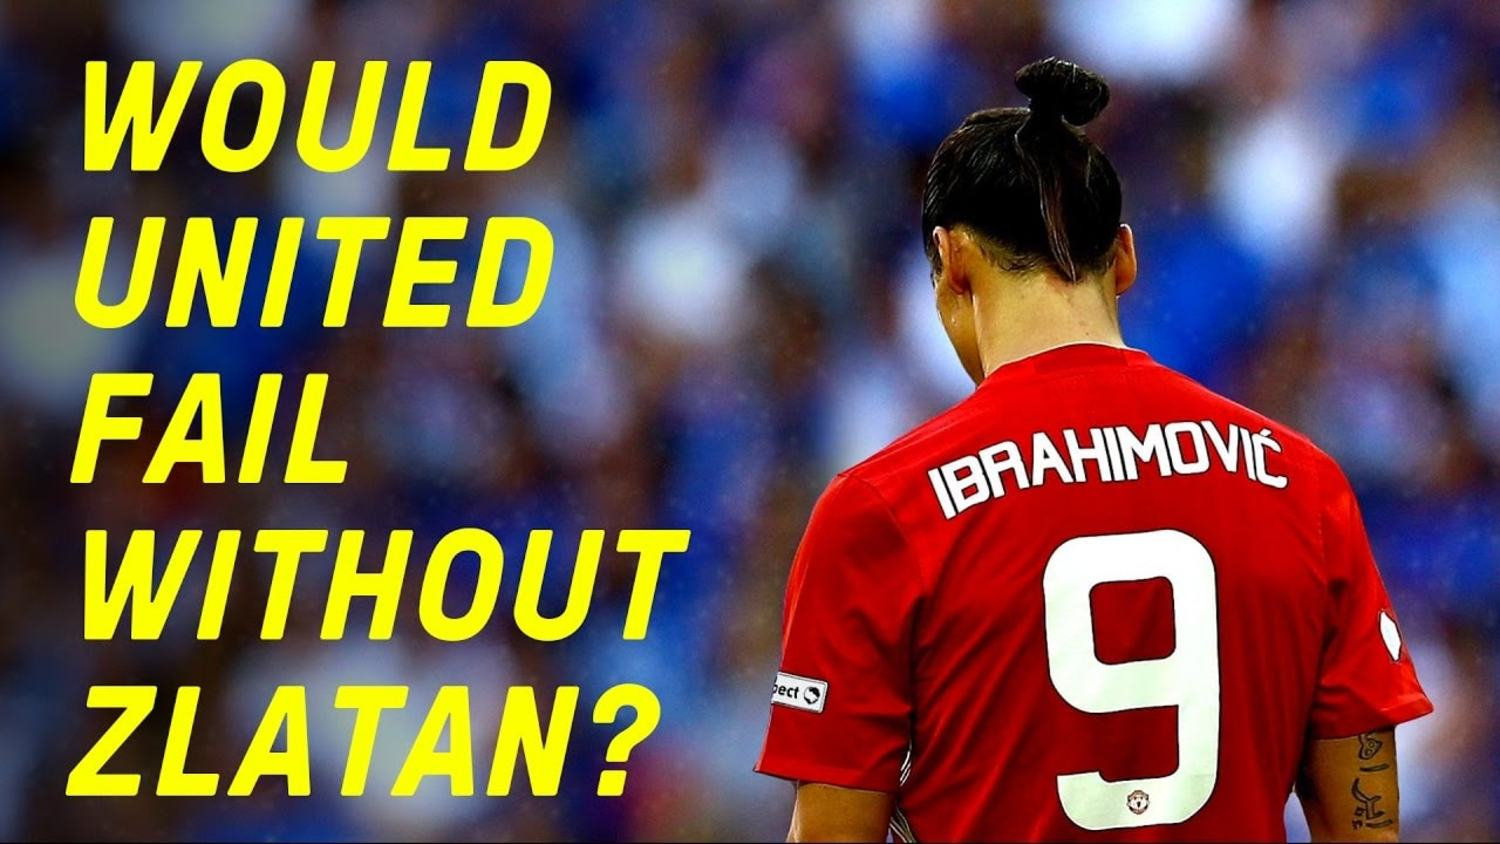 Would United Fail Without Zlatan?